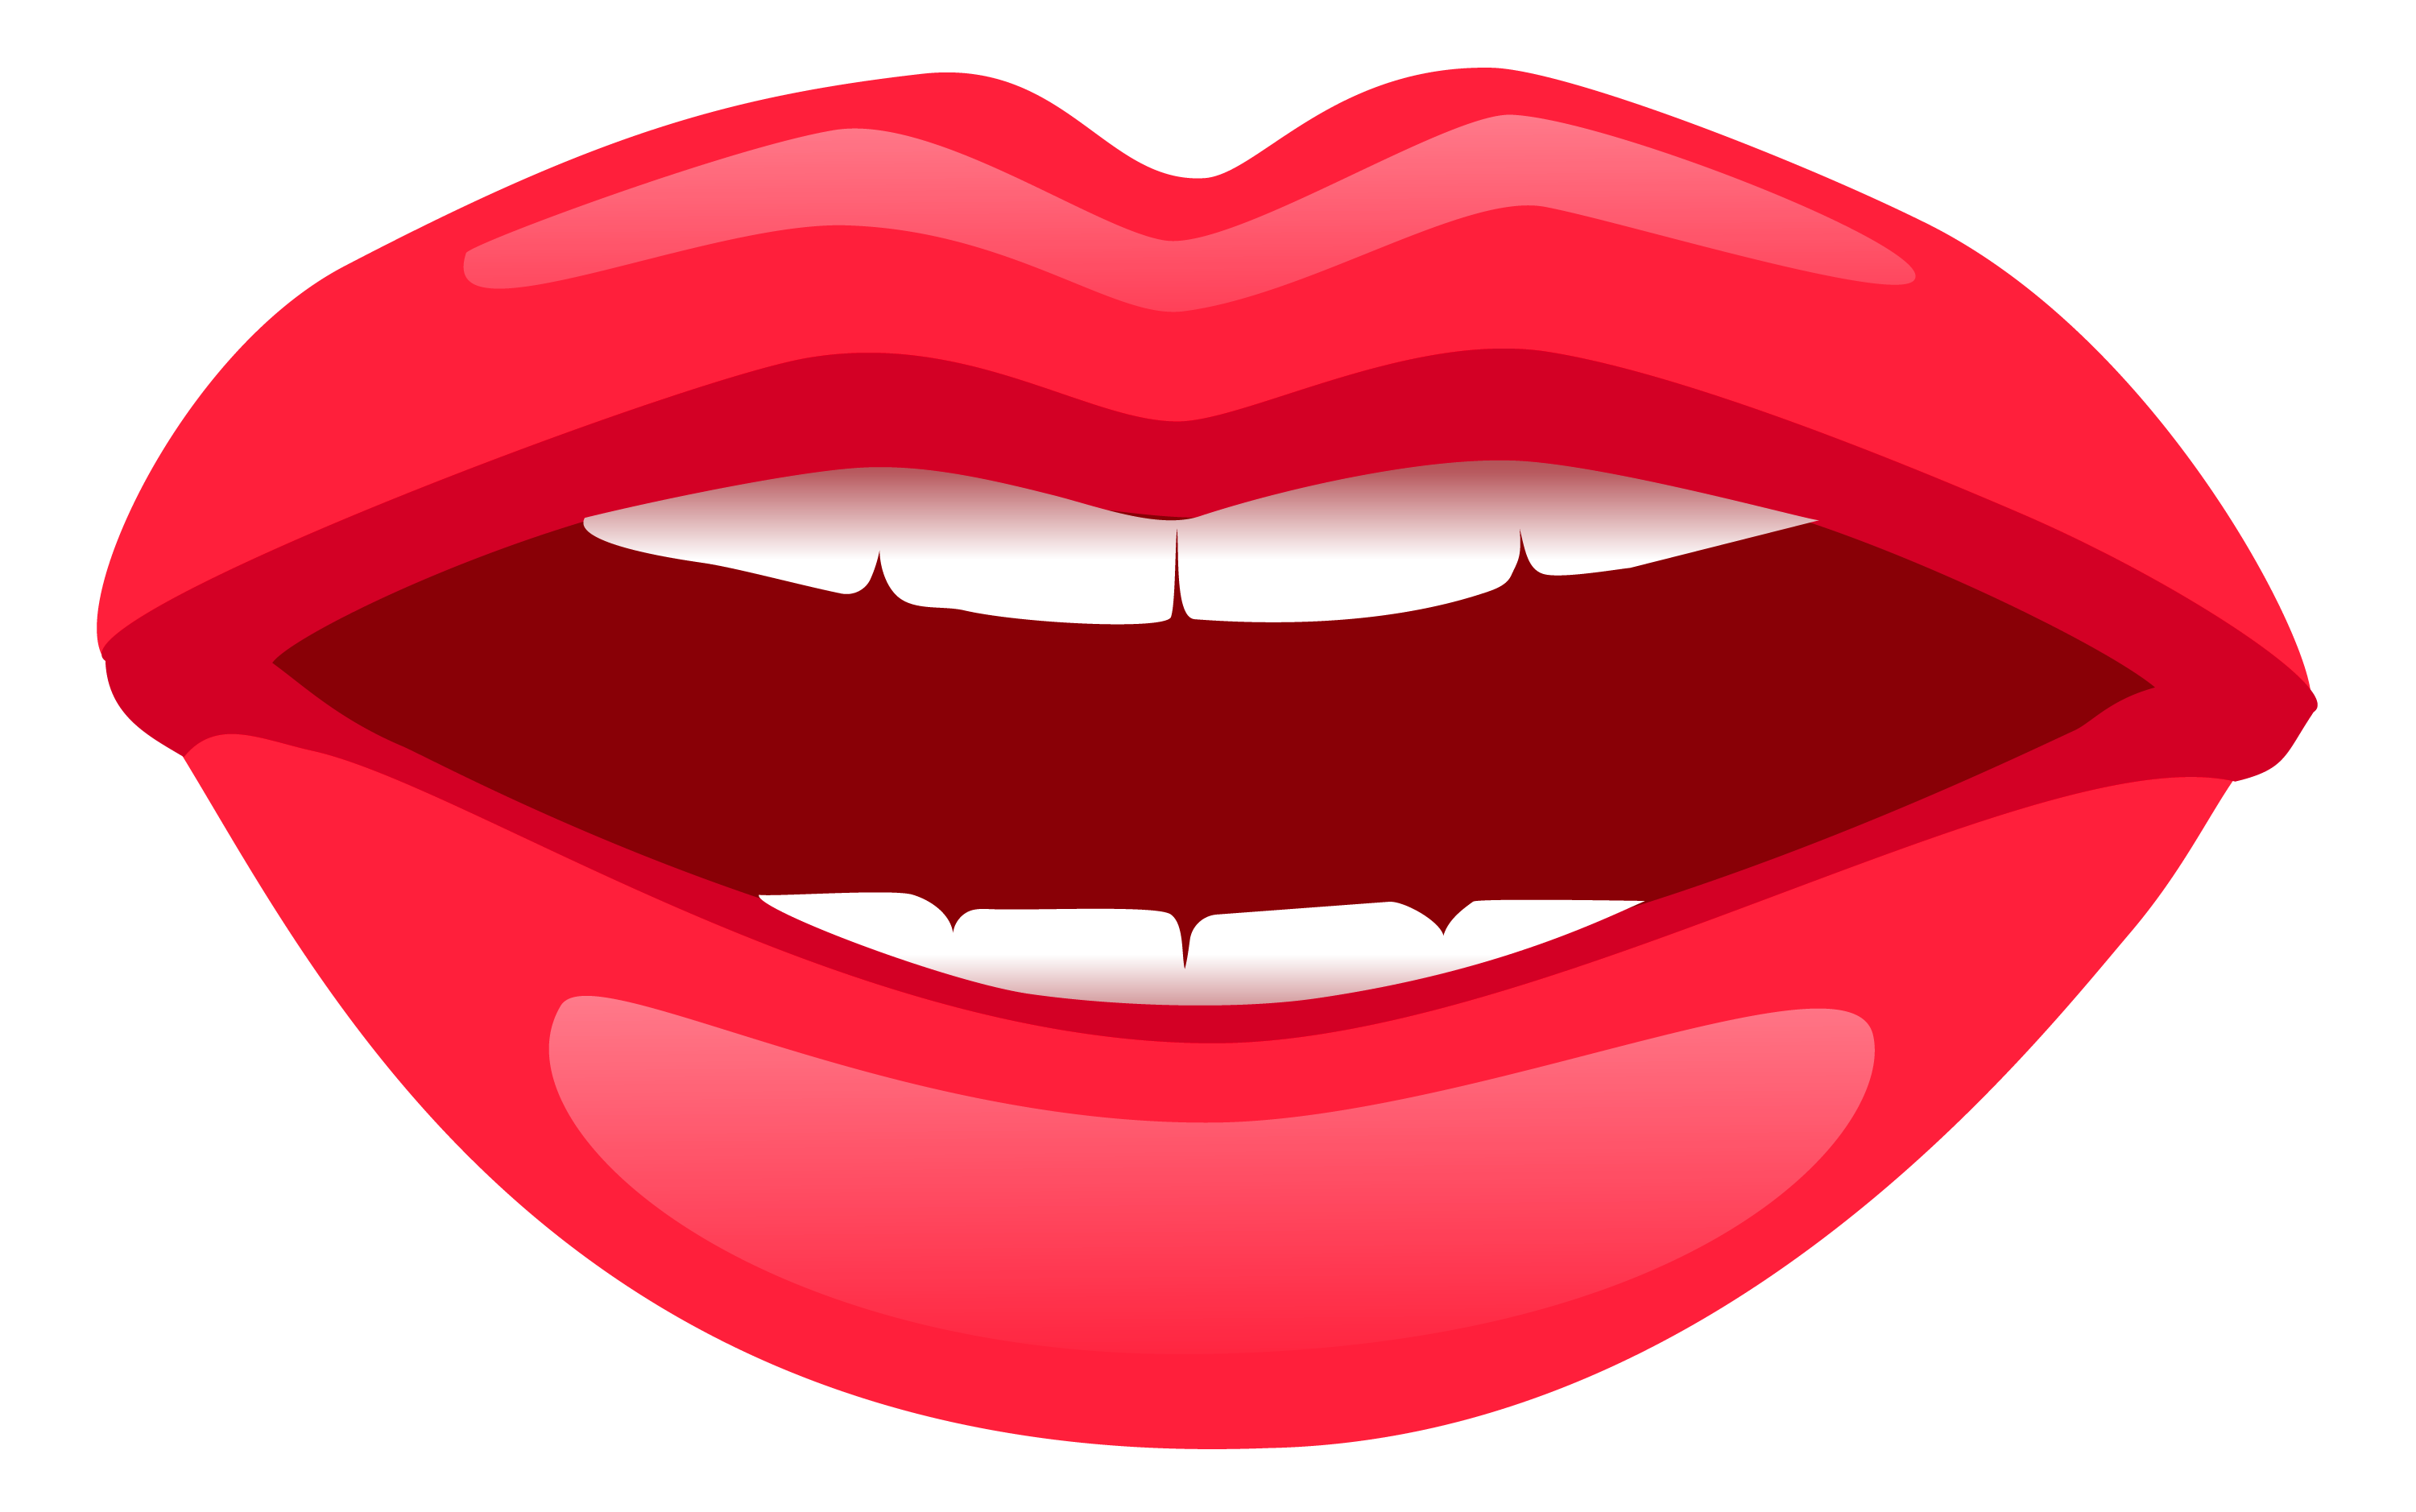 Mouth PNG Transparent Image.